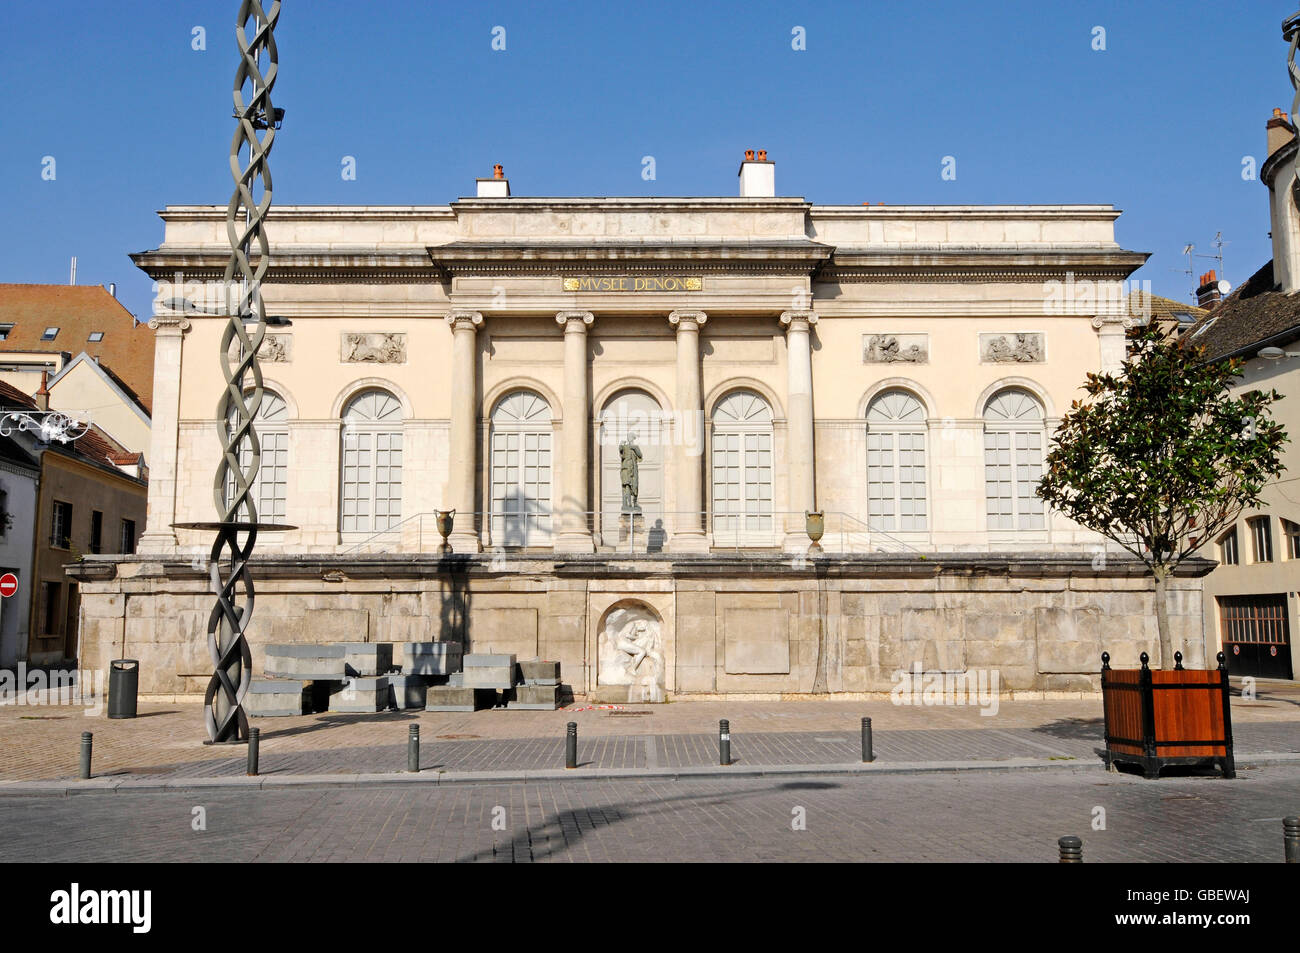 museum denon chalon sur saone saone et loire burgundy france stock photo 110350650 alamy. Black Bedroom Furniture Sets. Home Design Ideas